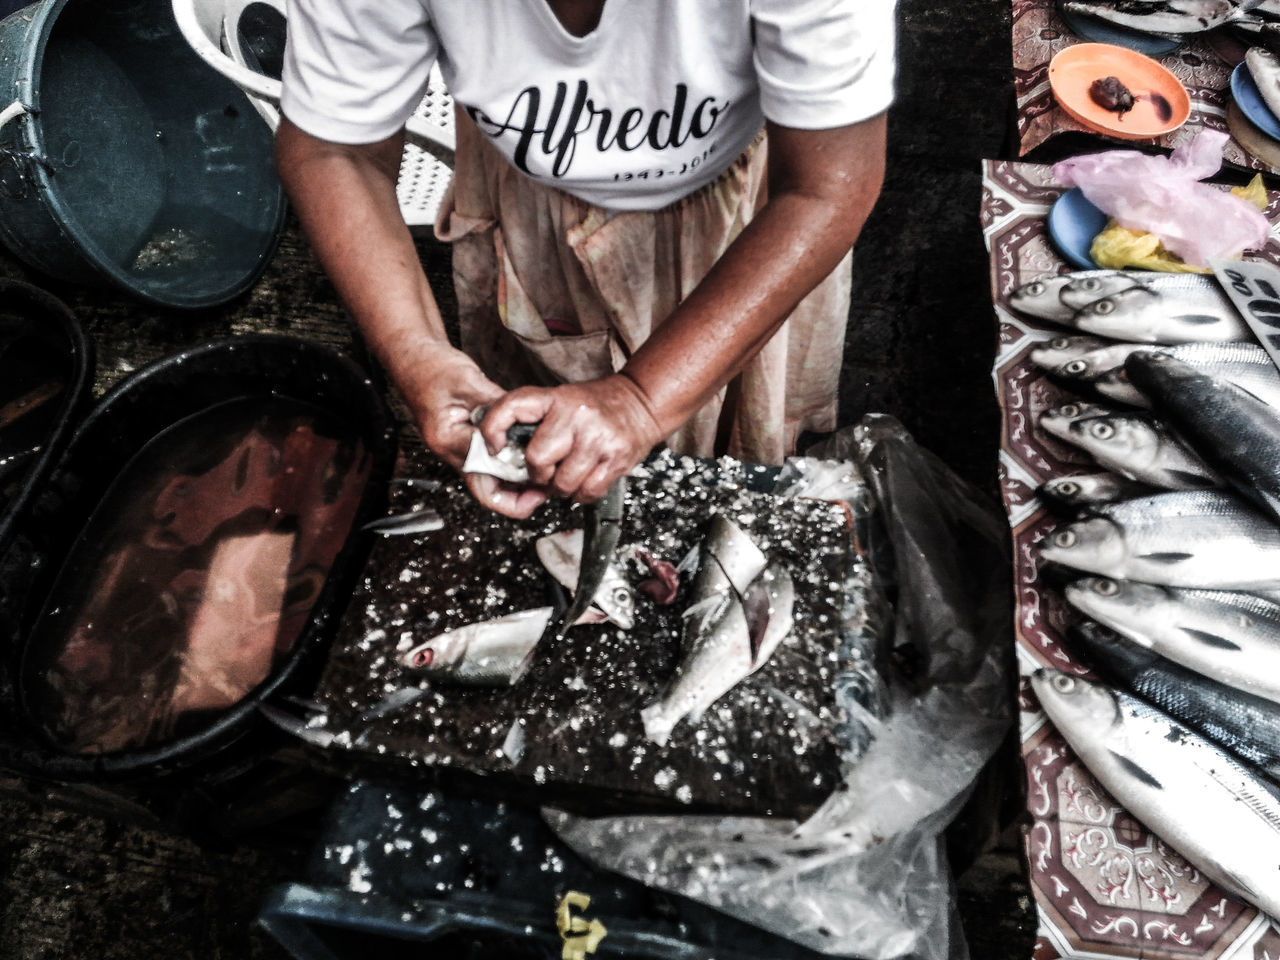 Nanay, in here late 70s (AFAIK), still works as a fish vendor. One Person Labor Day Working Eyeem Philippines Philippines Labor Day Philippines Outdoors Working Hands Streetphotography Street Photography EyeEmPHLaborDay2017 The Photojournalist - 2017 EyeEm Awards The Street Photographer - 2017 EyeEm Awards